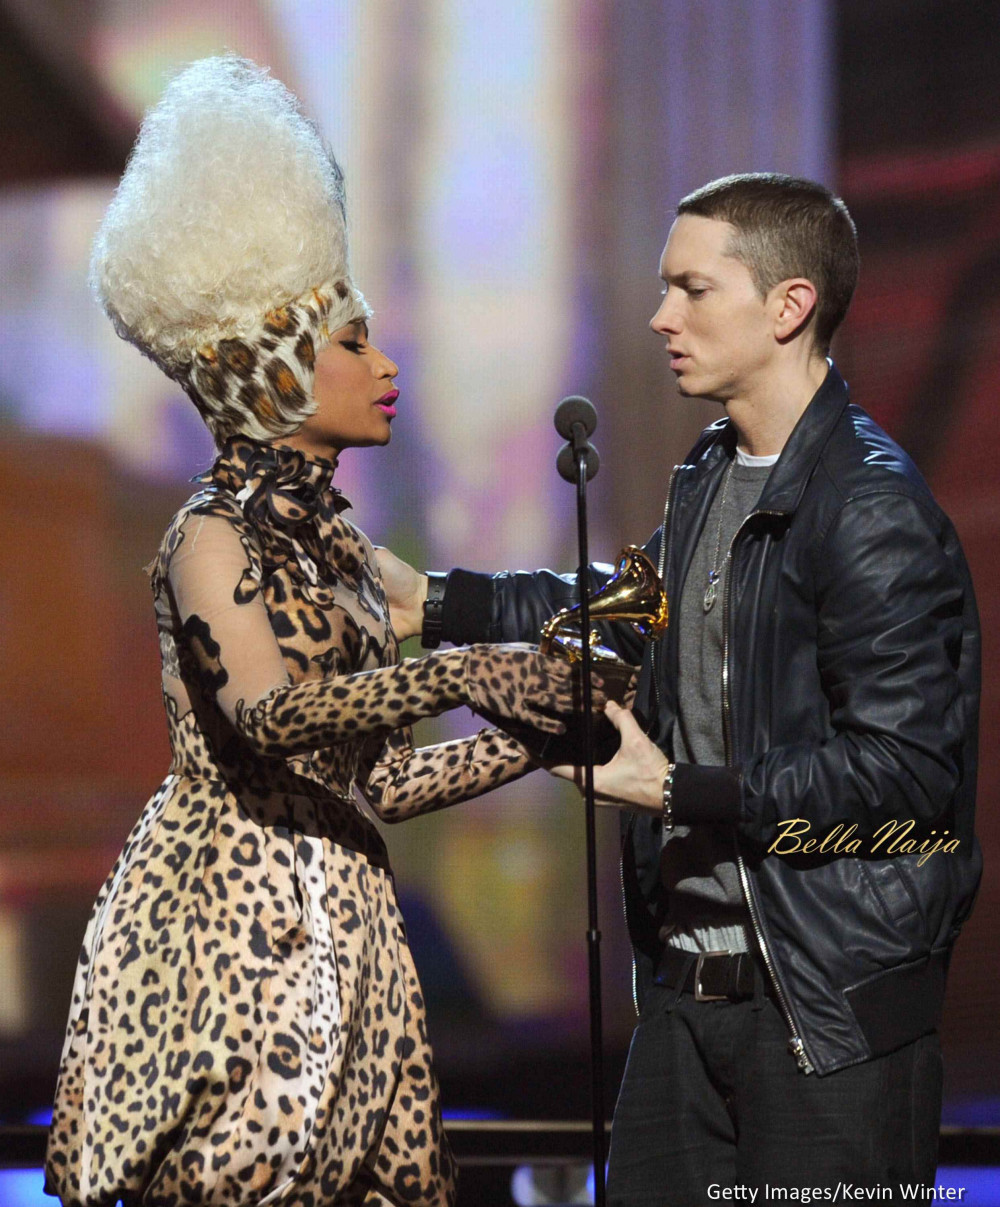 Nicki Minaj says she's dating Eminem - but is it just a joke?